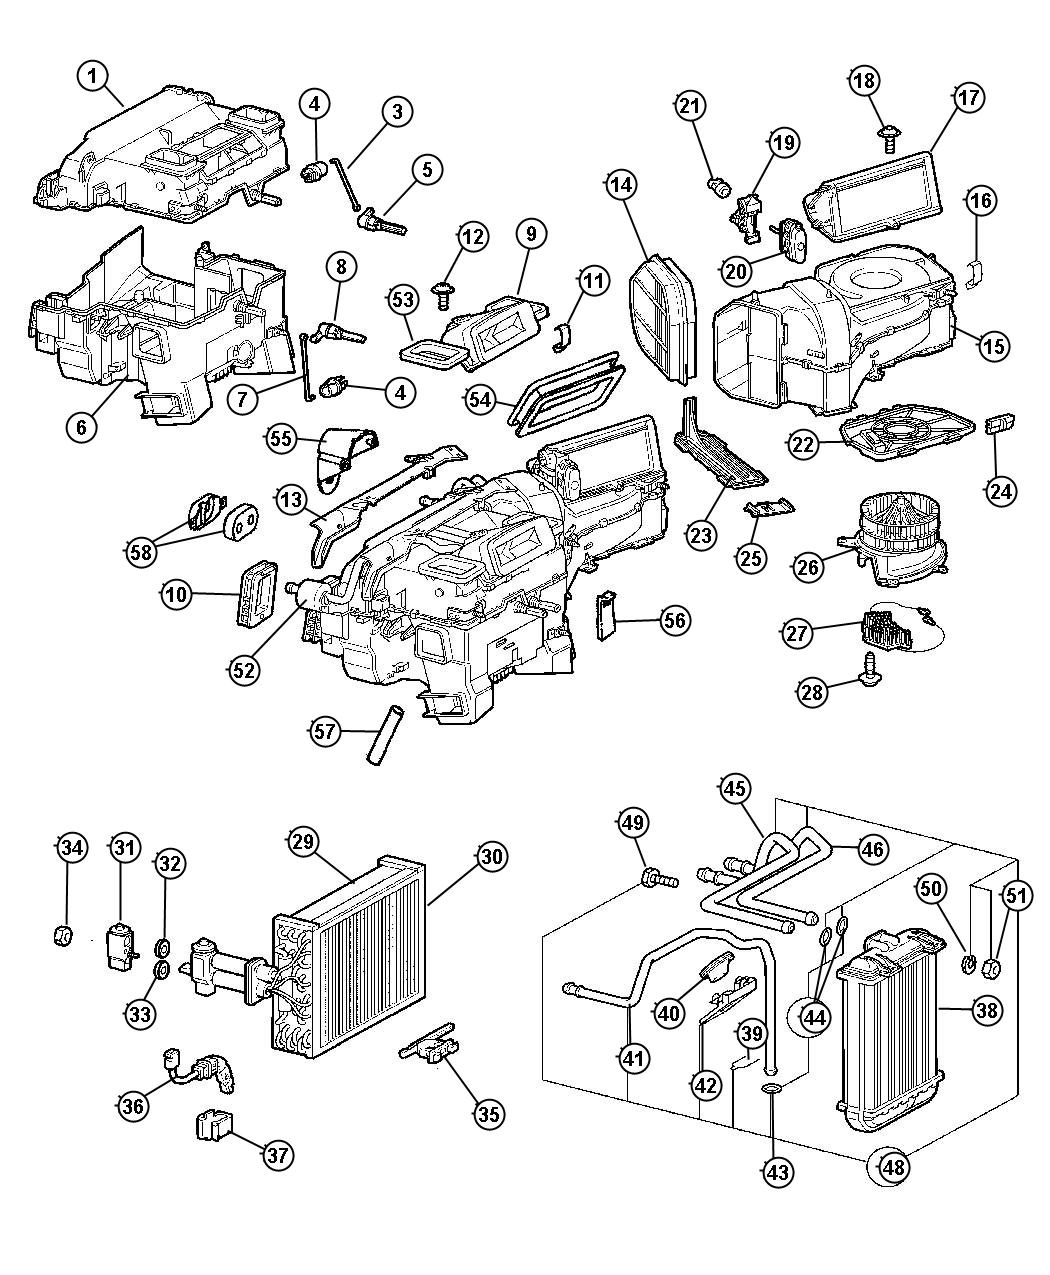 2002 Mercedes C240 Engine Fuse Box Diagram. Mercedes. Auto